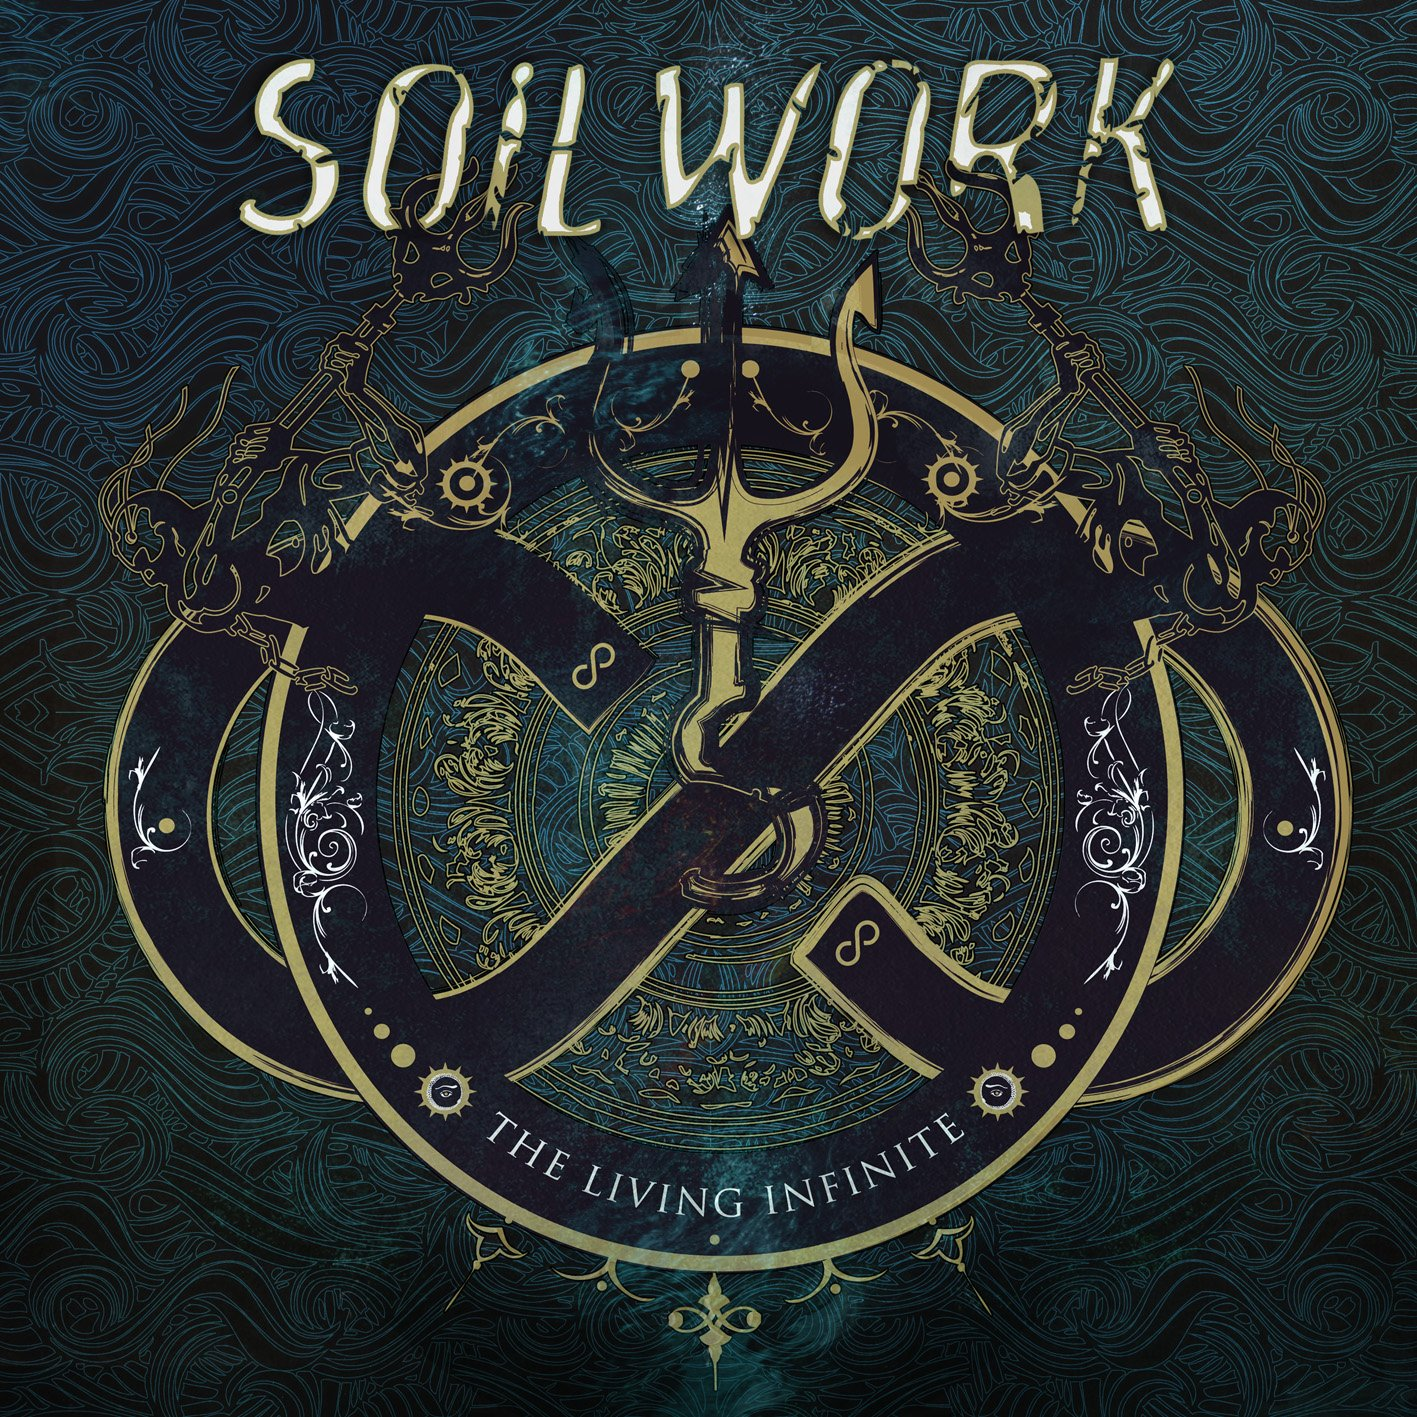 Soilwork - The Living Infinite (Limited Edition)